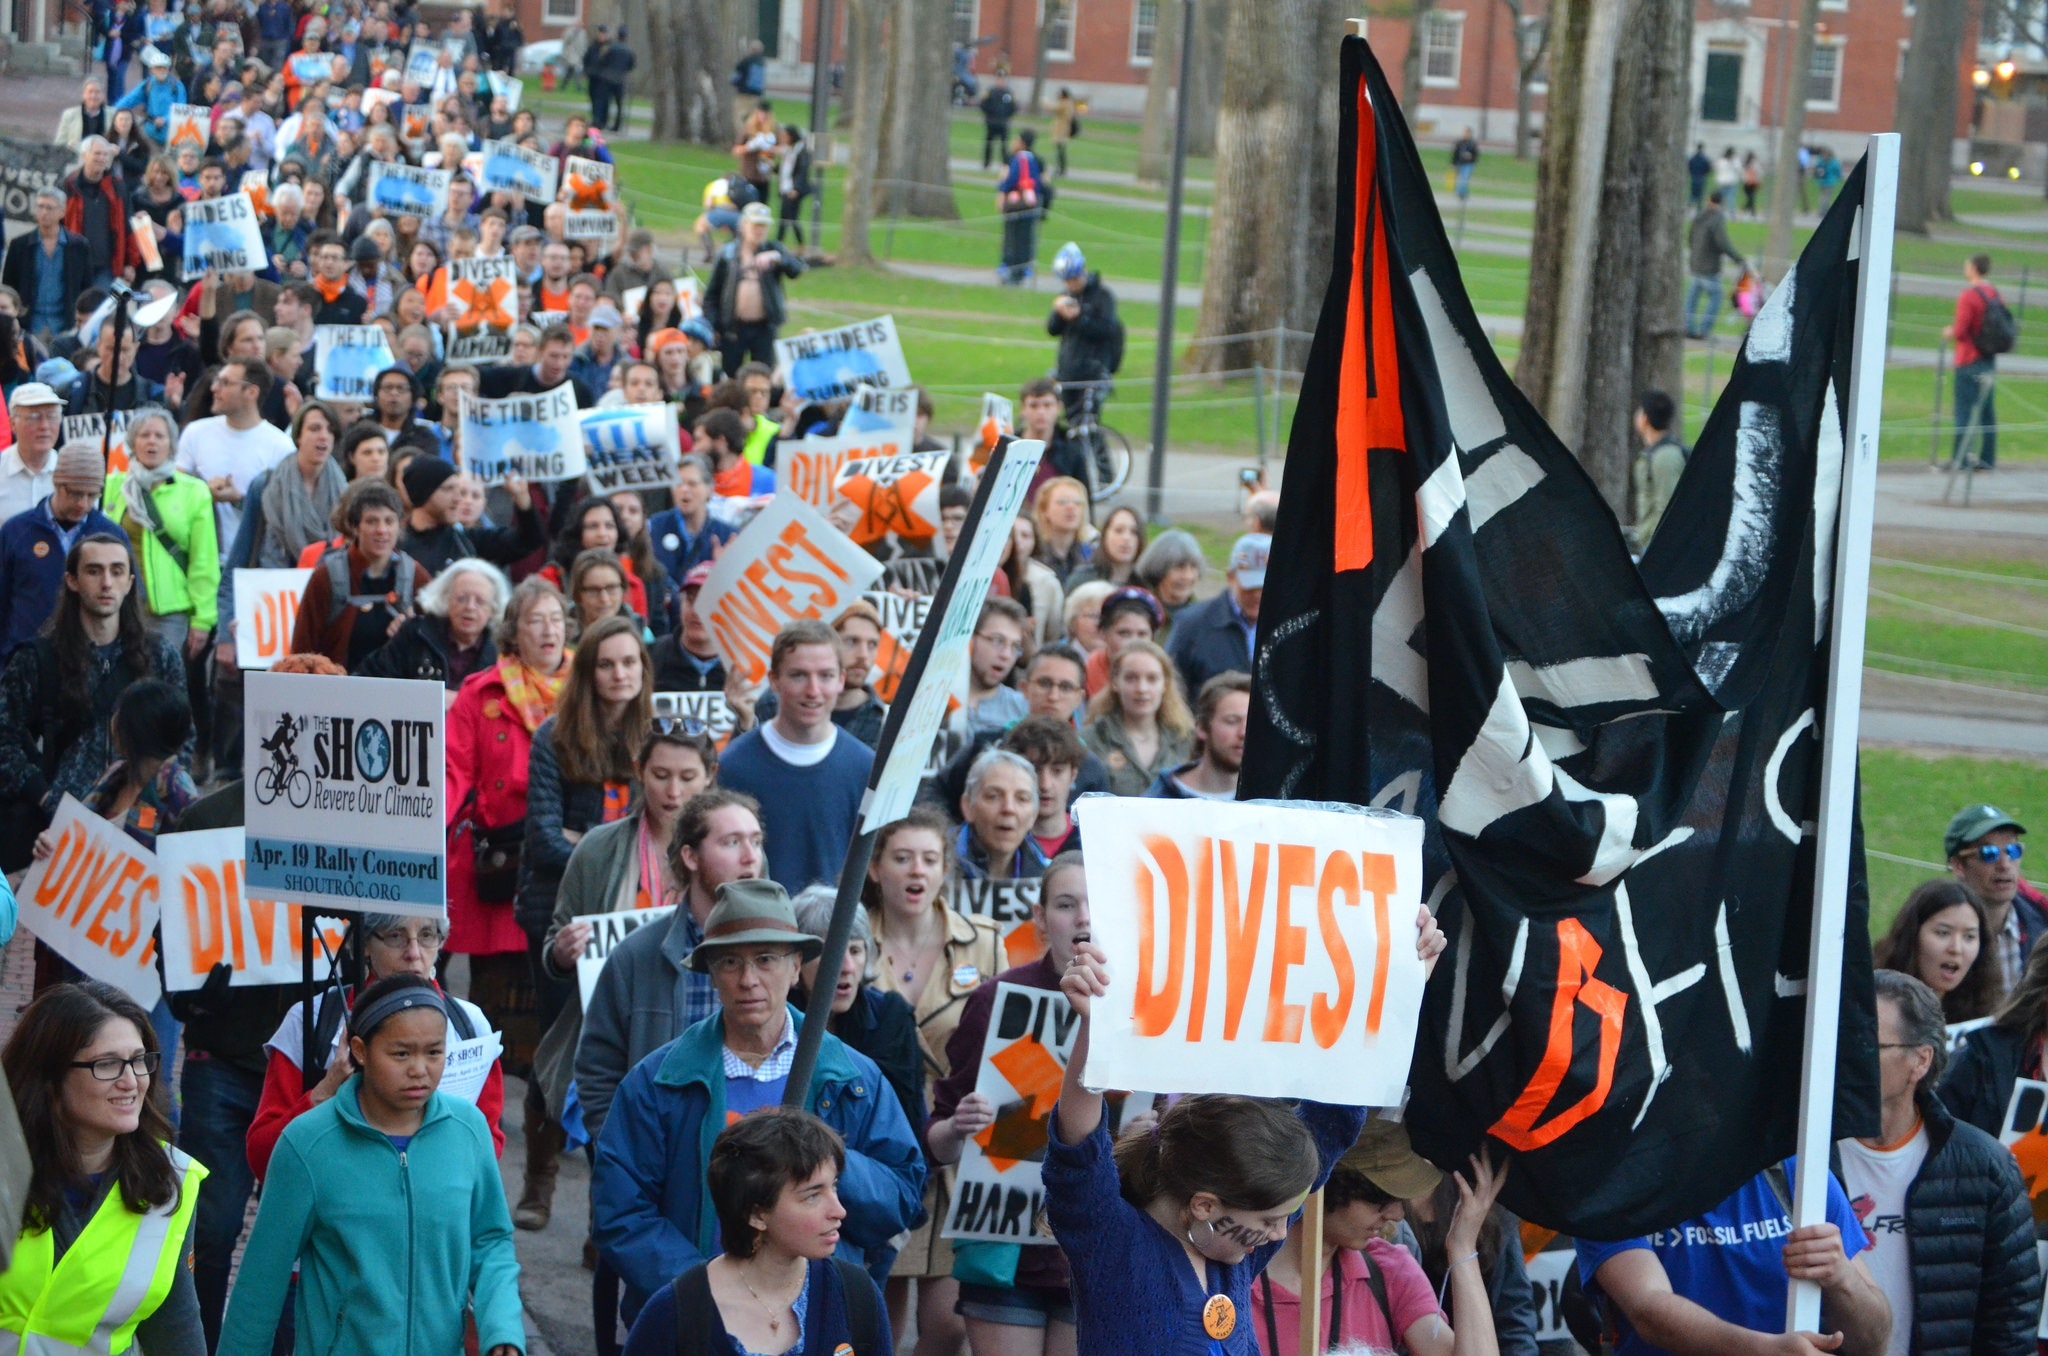 Fossil fuel divestment debates on campus spotlight the societal role of colleges and universities